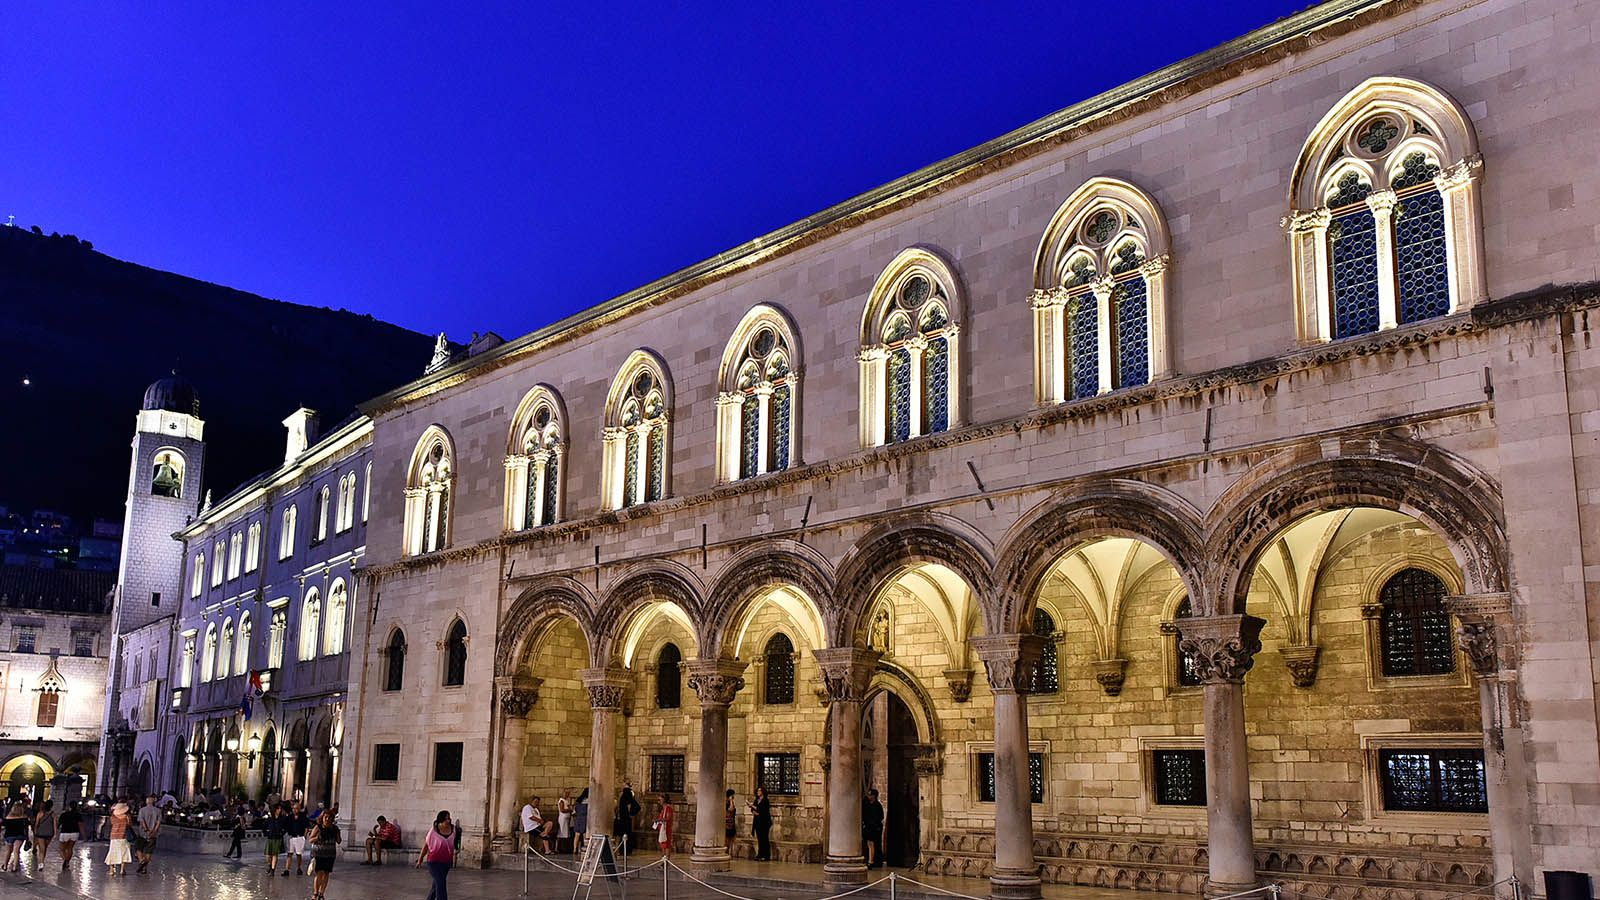 Dubrovnik - the city of many wonders